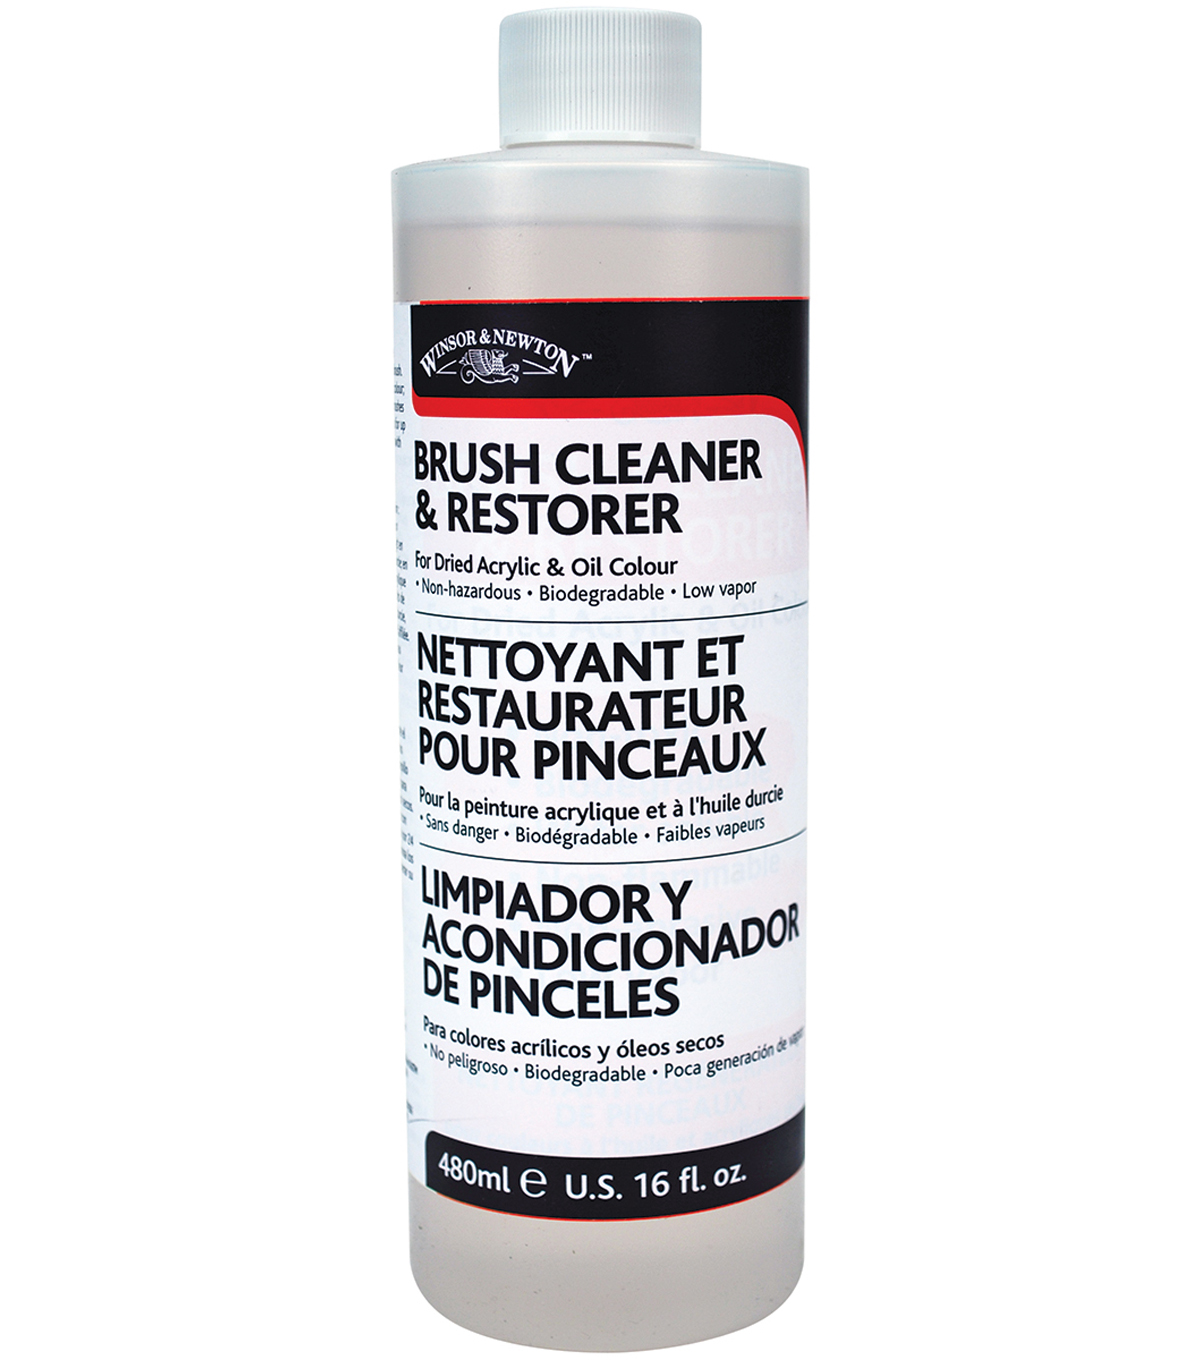 Winsor & Newton Brush Cleaner & Restorer-16oz